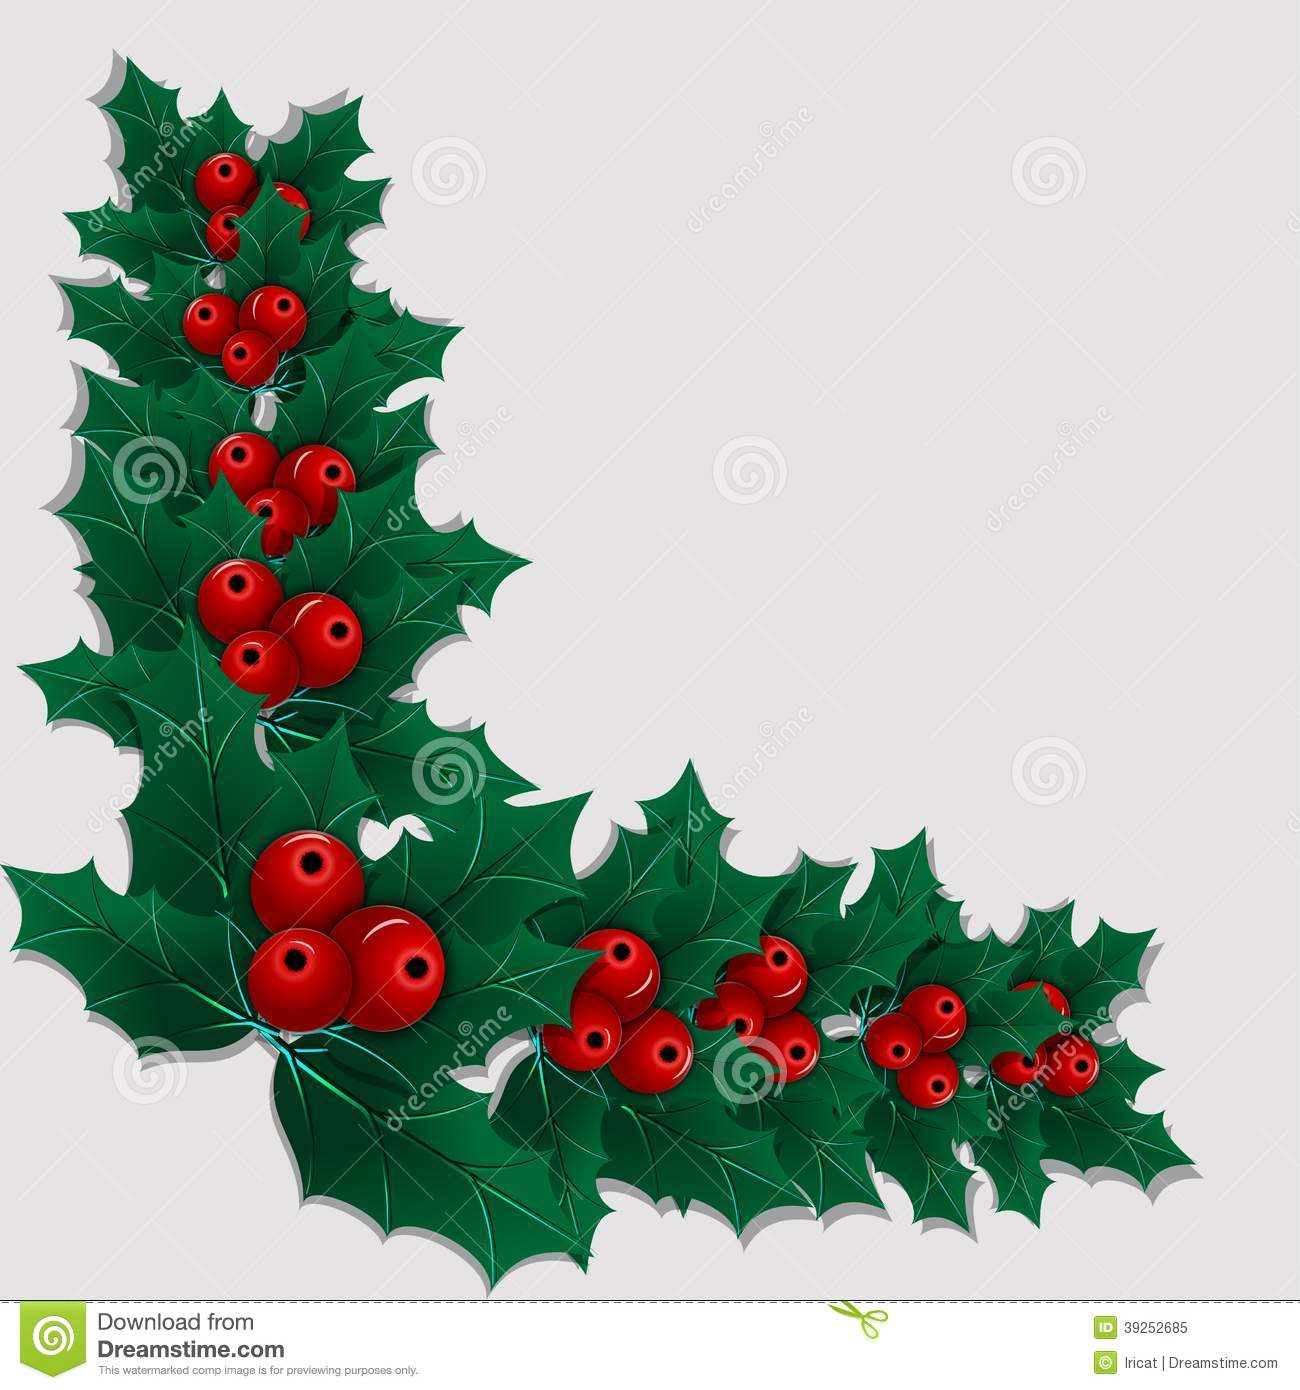 Christmas Leaves.Christmas Decorative Corner Element With Holly Leaves And